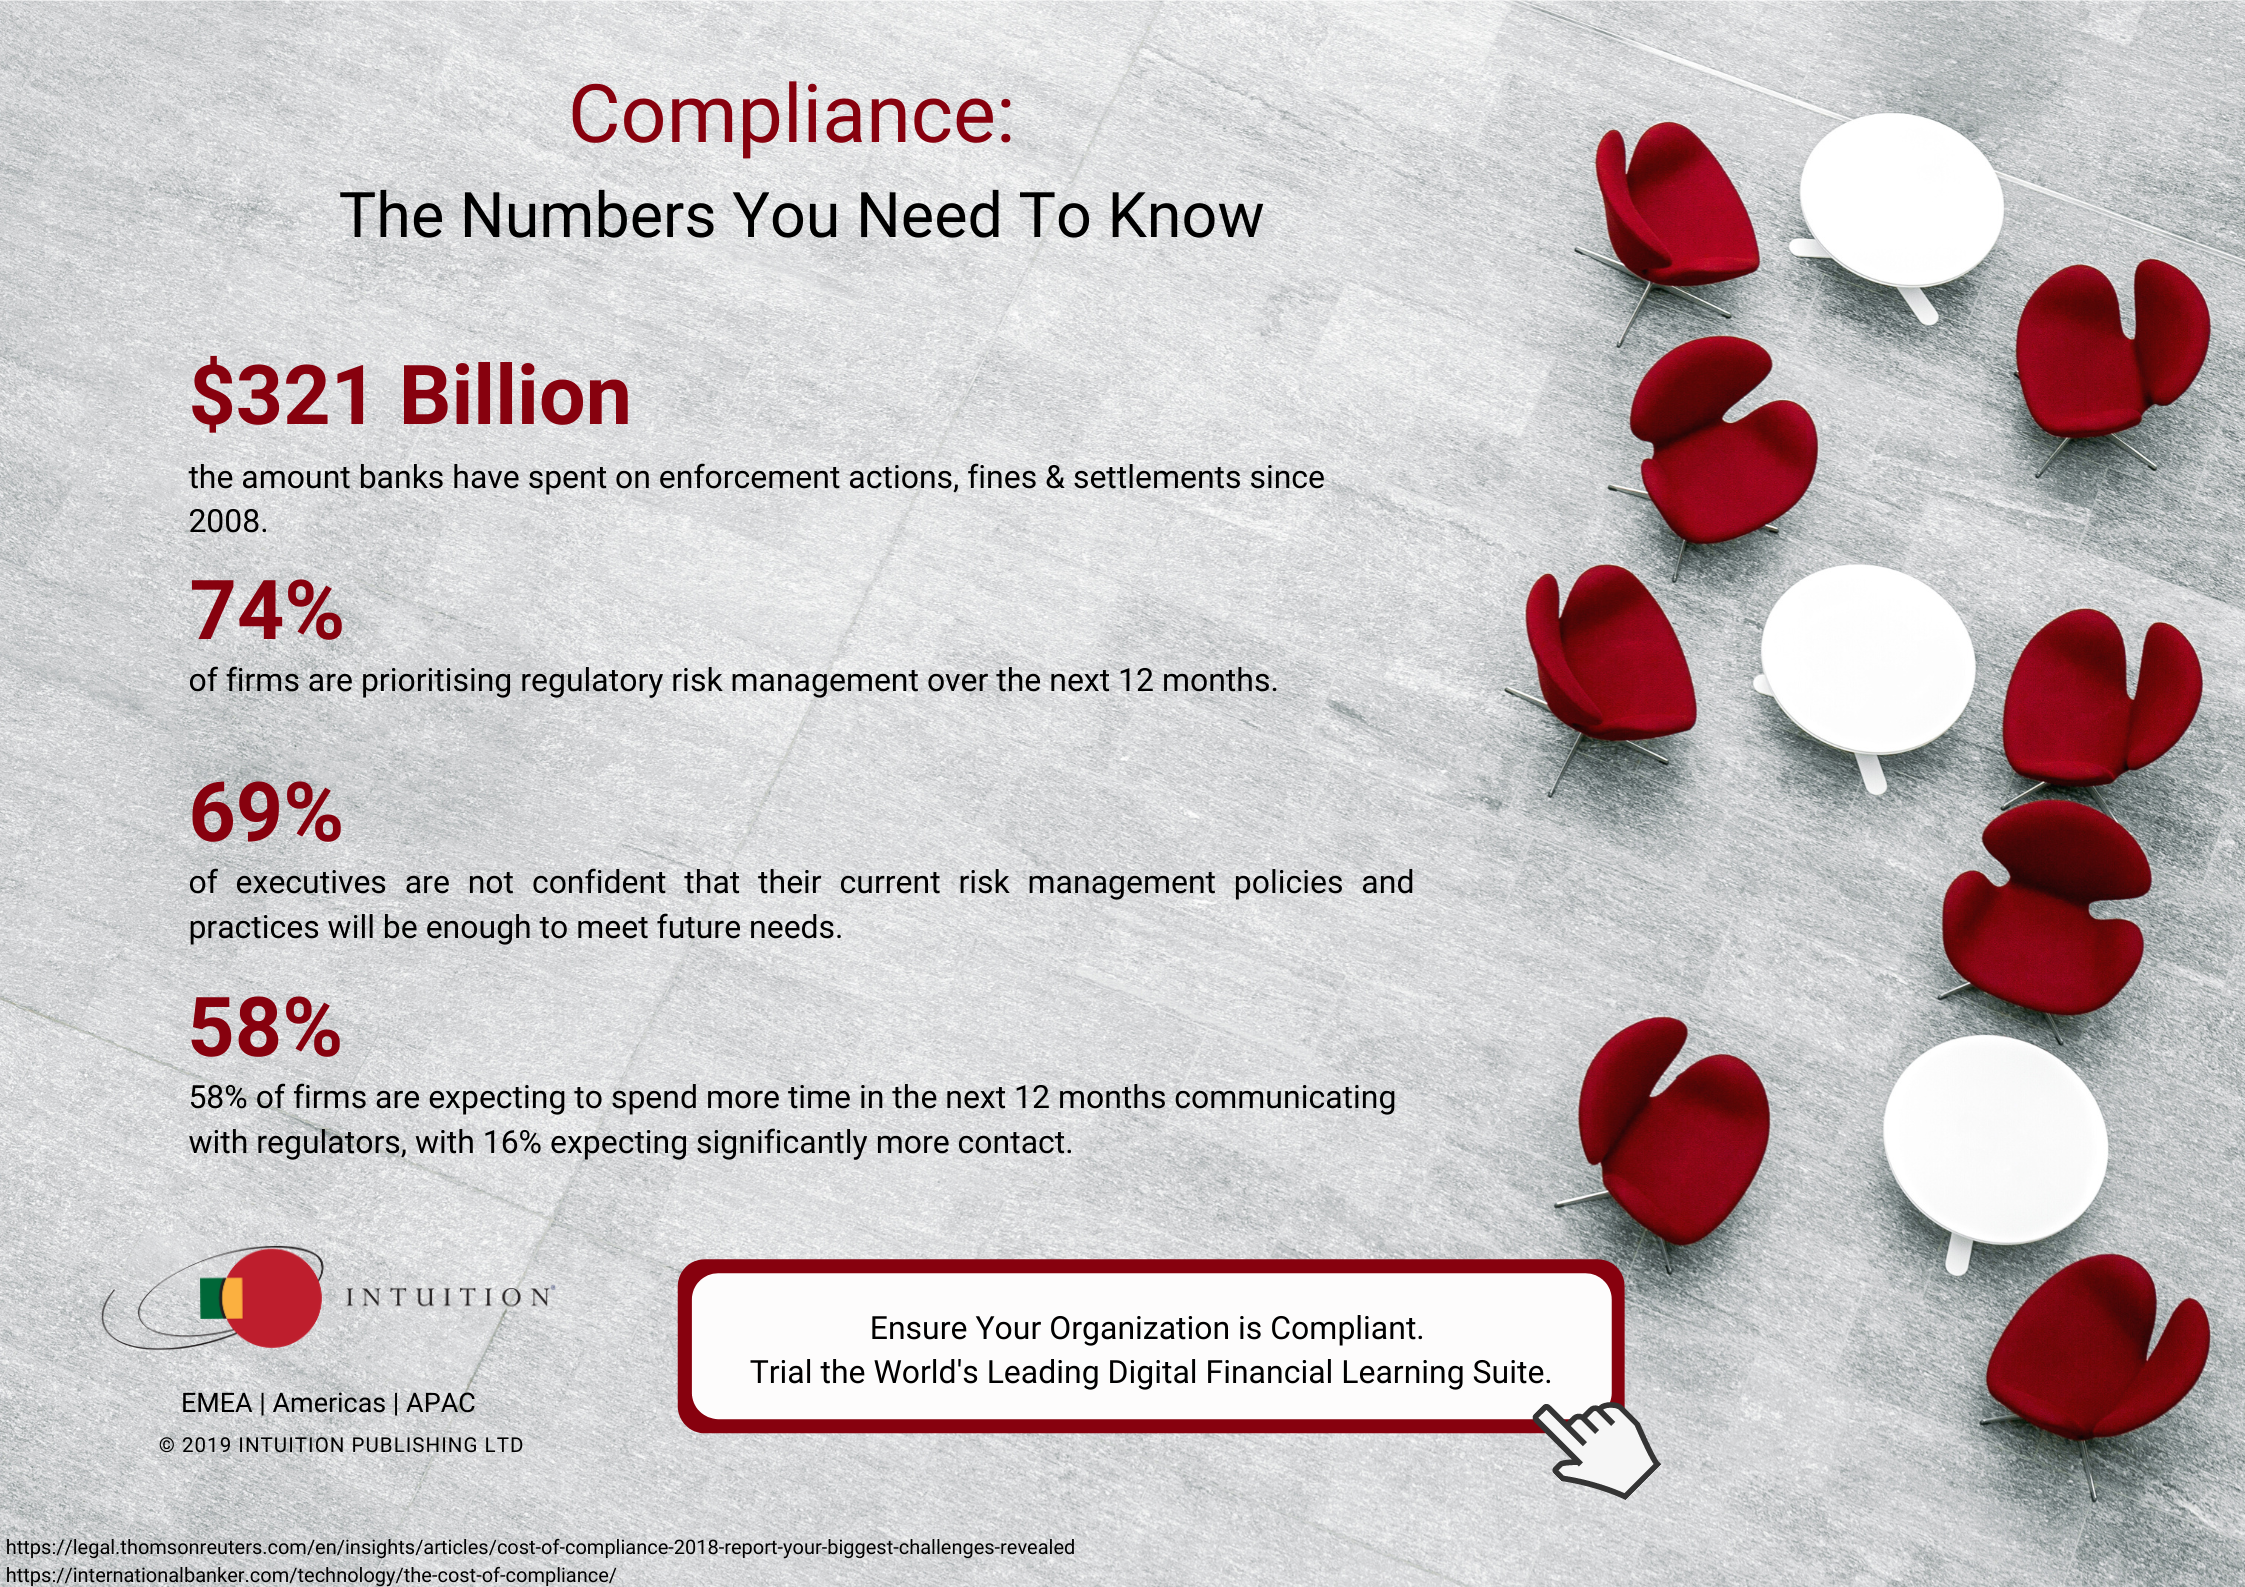 Compliance:  The Numbers You Need To Know